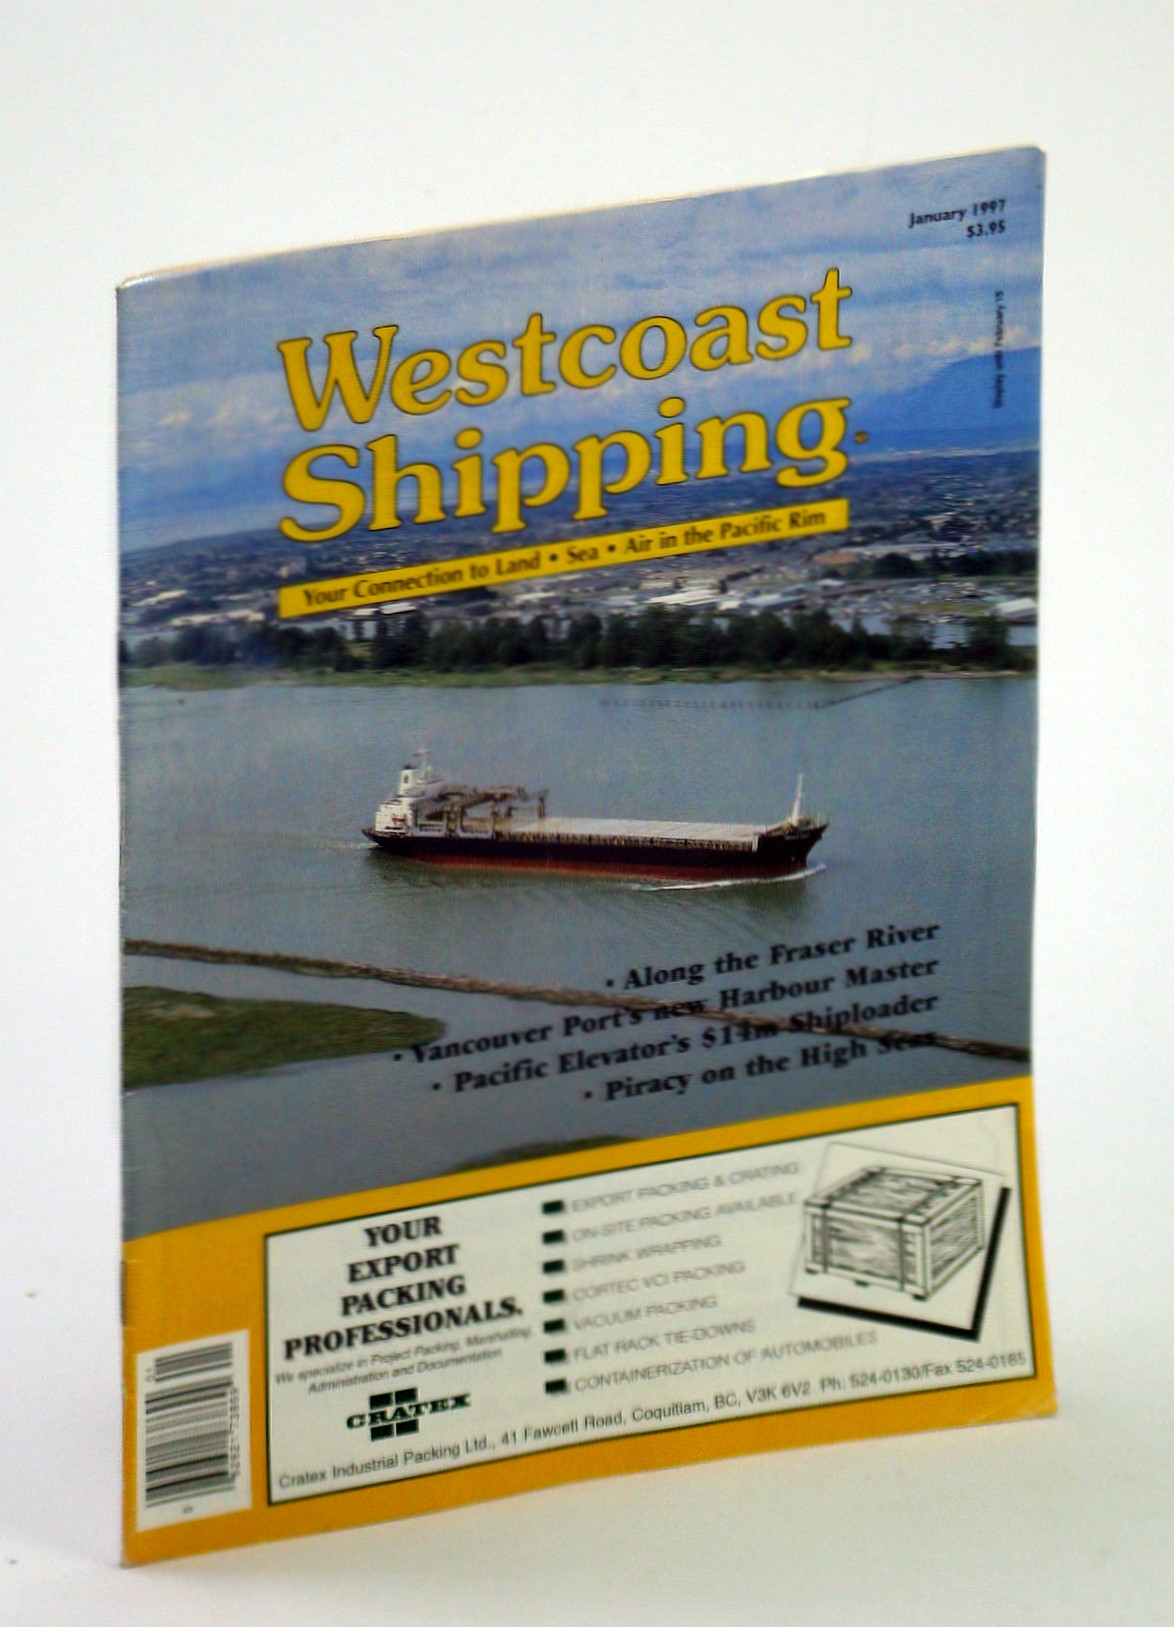 Image for Westcoast Shipping [Magazine] - Your Connection to Land, Sea, Air in the Pacific Rim, January 1997